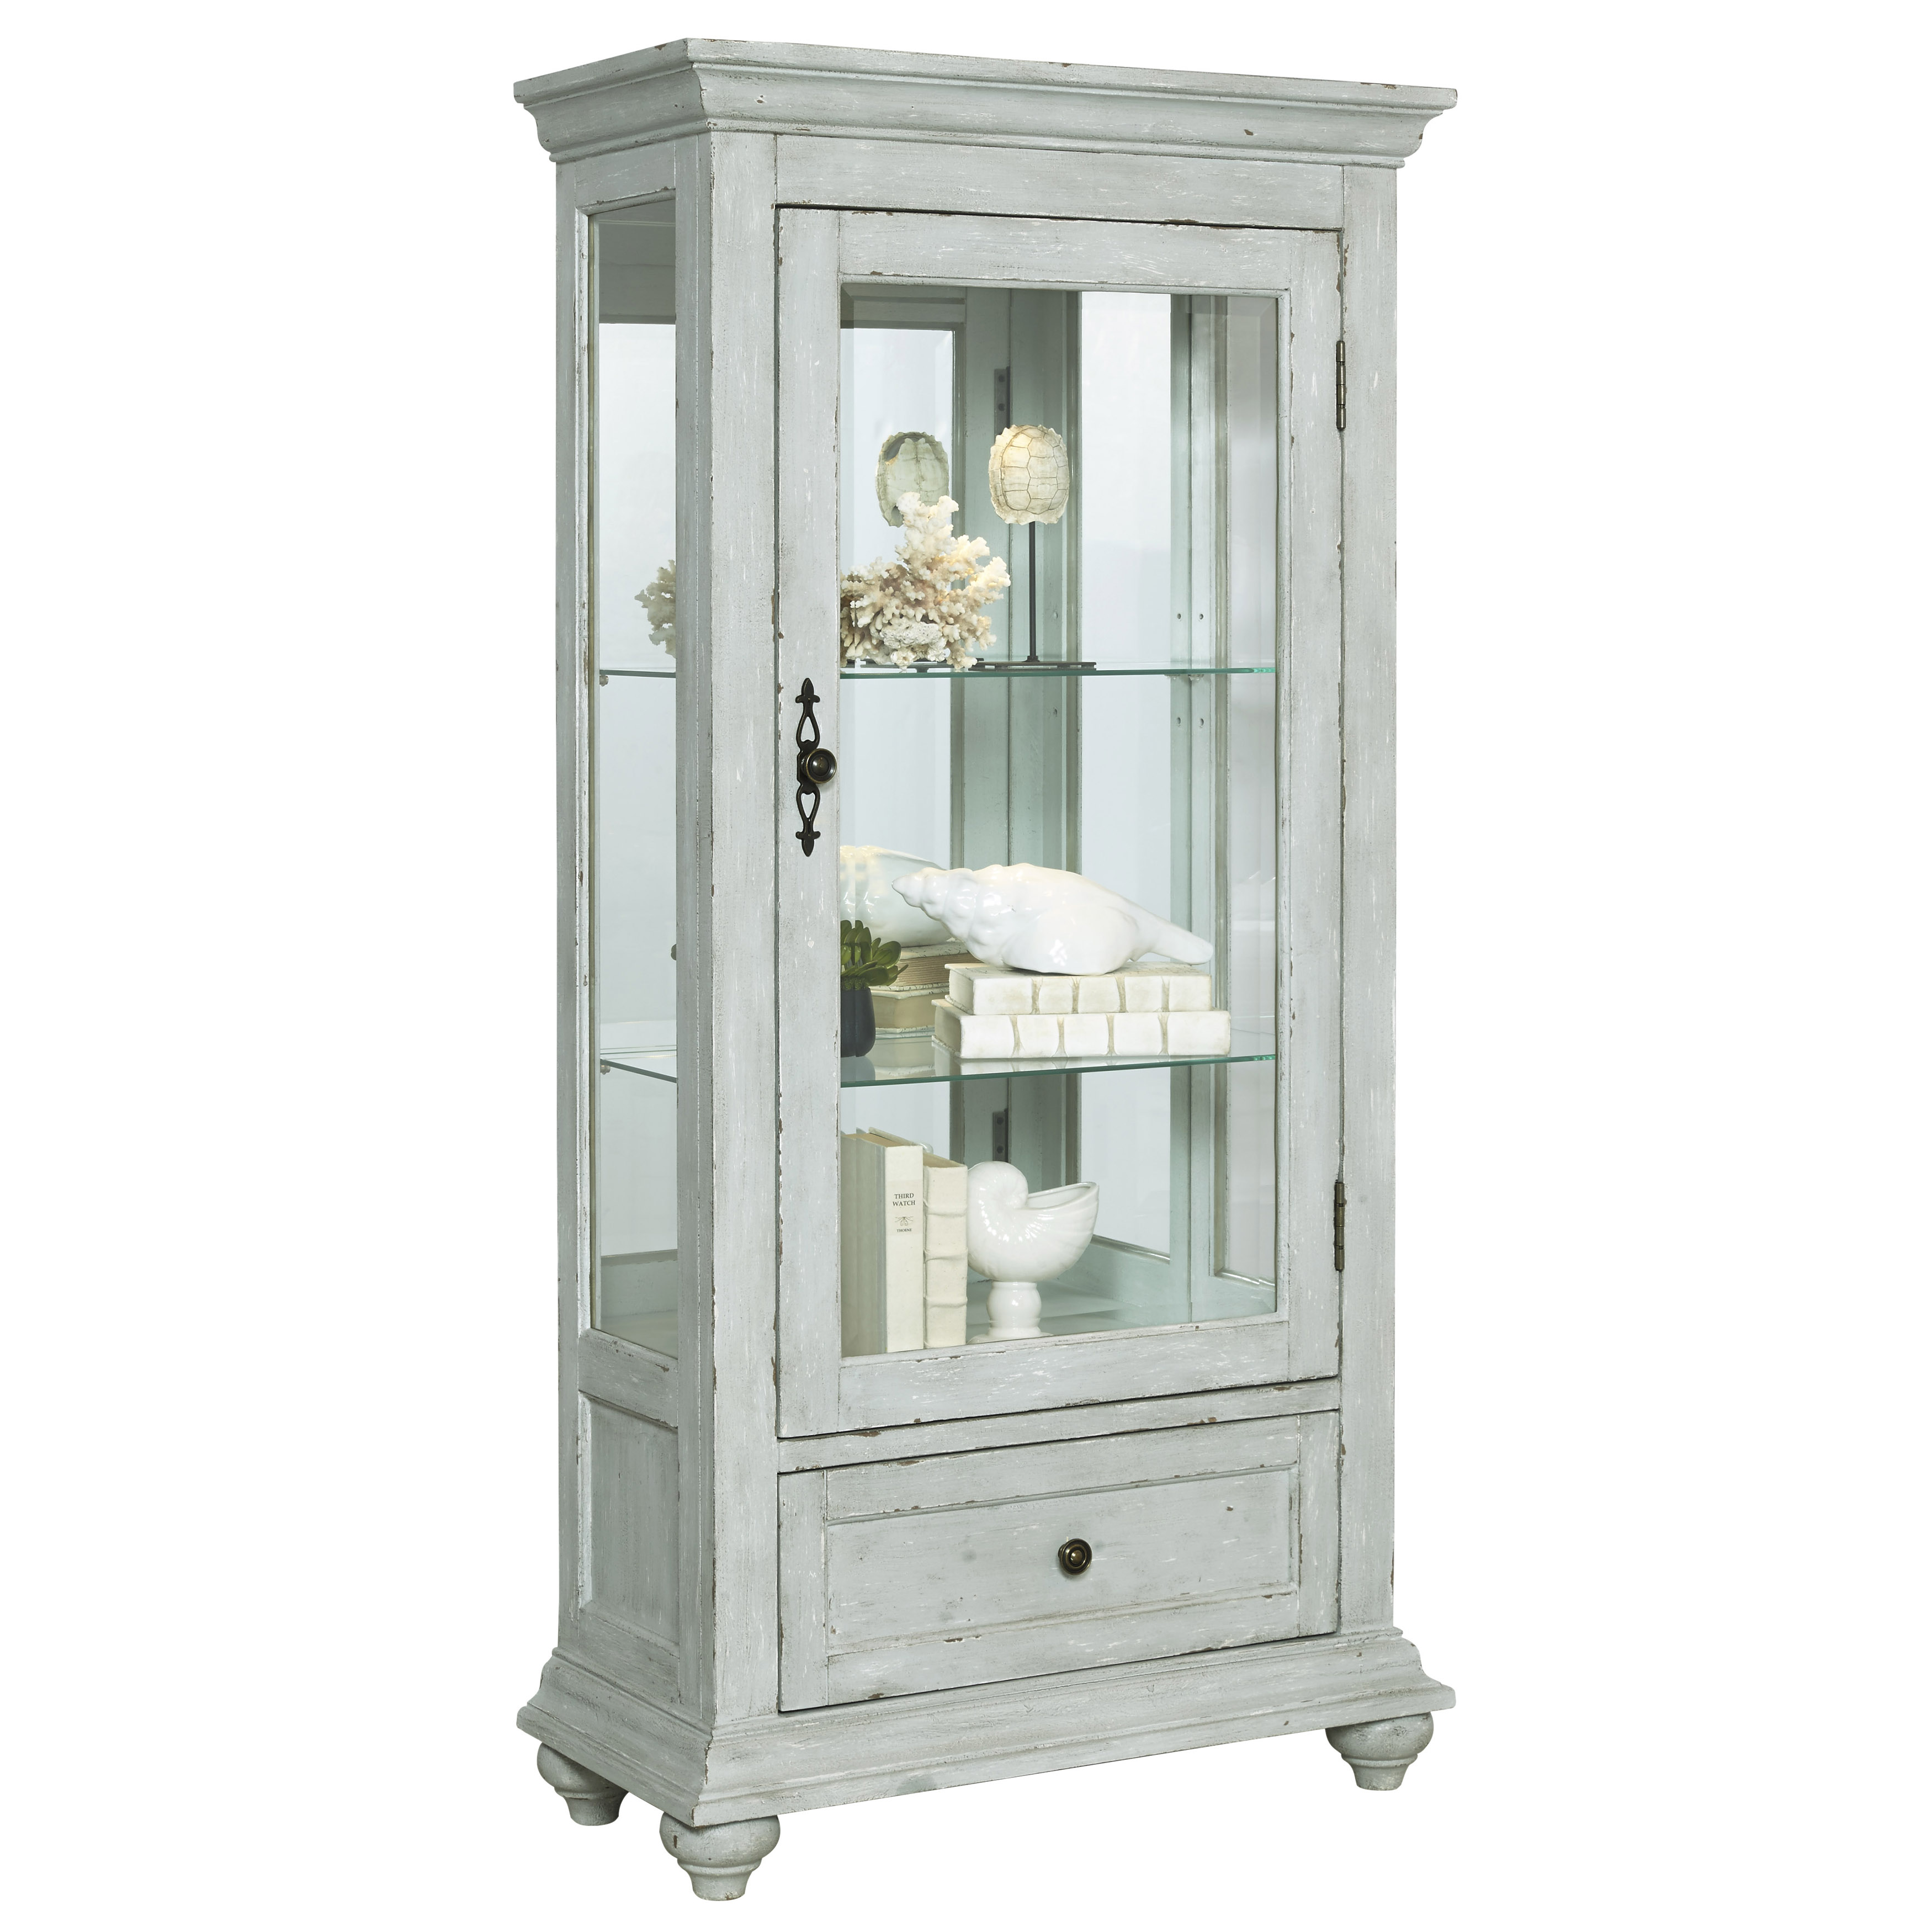 Glass Curio Cabinet in Weathered Grey